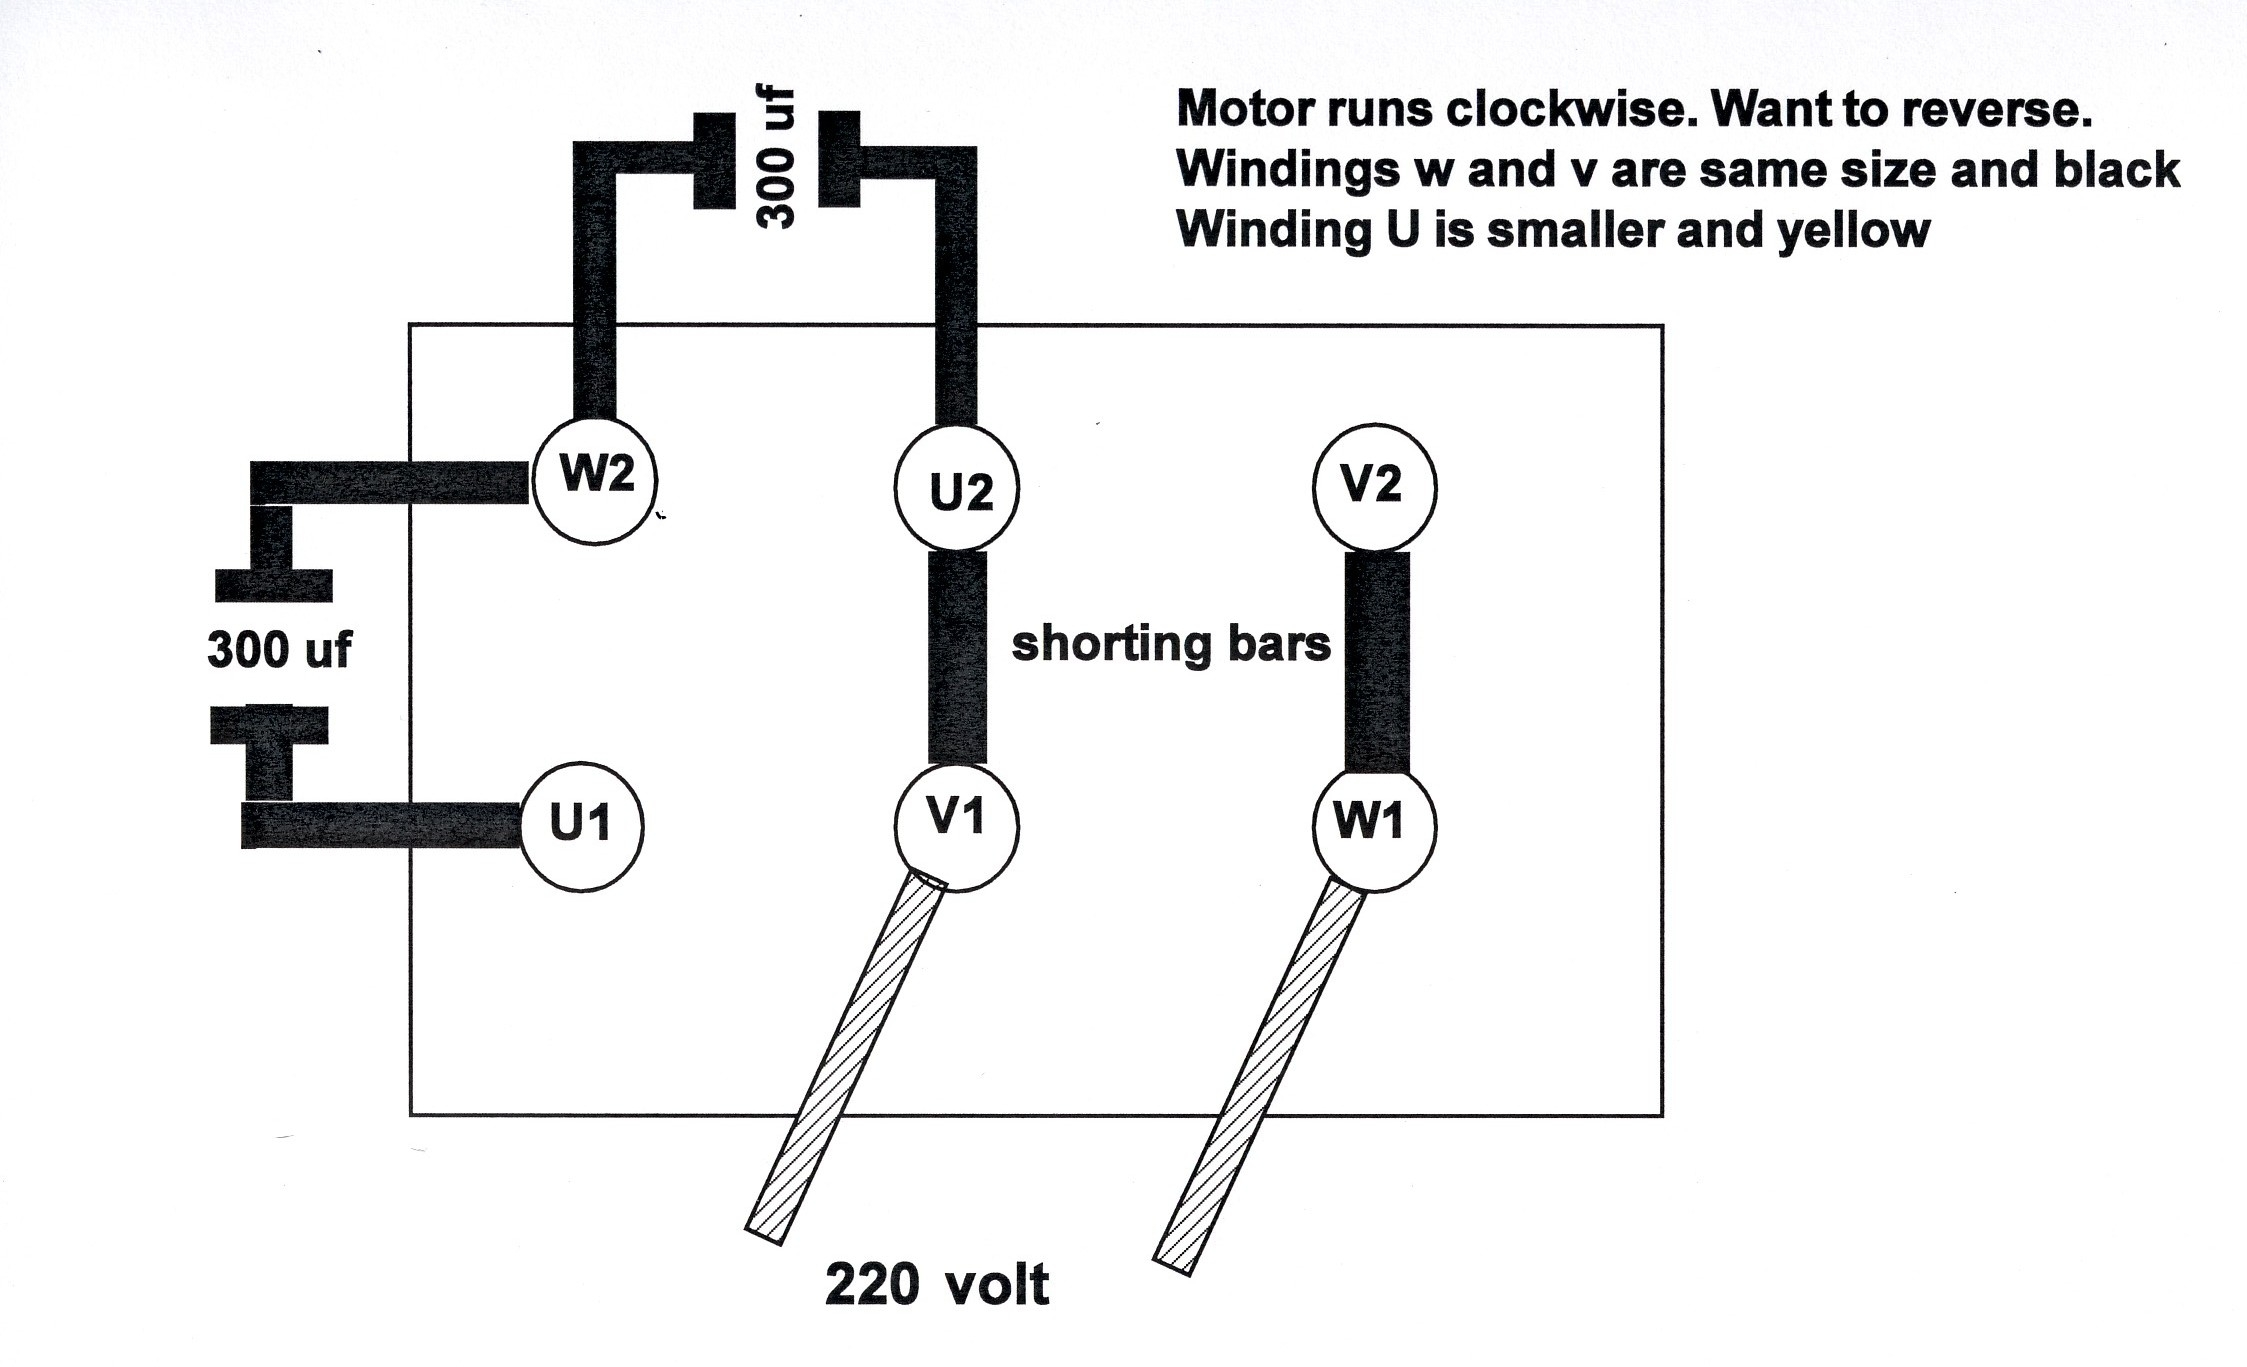 I Have A Yl100 2 220 Motor It Is Currently Set To Run Clockwise Single Phase Reversing Wiring Diagram Full Size Image